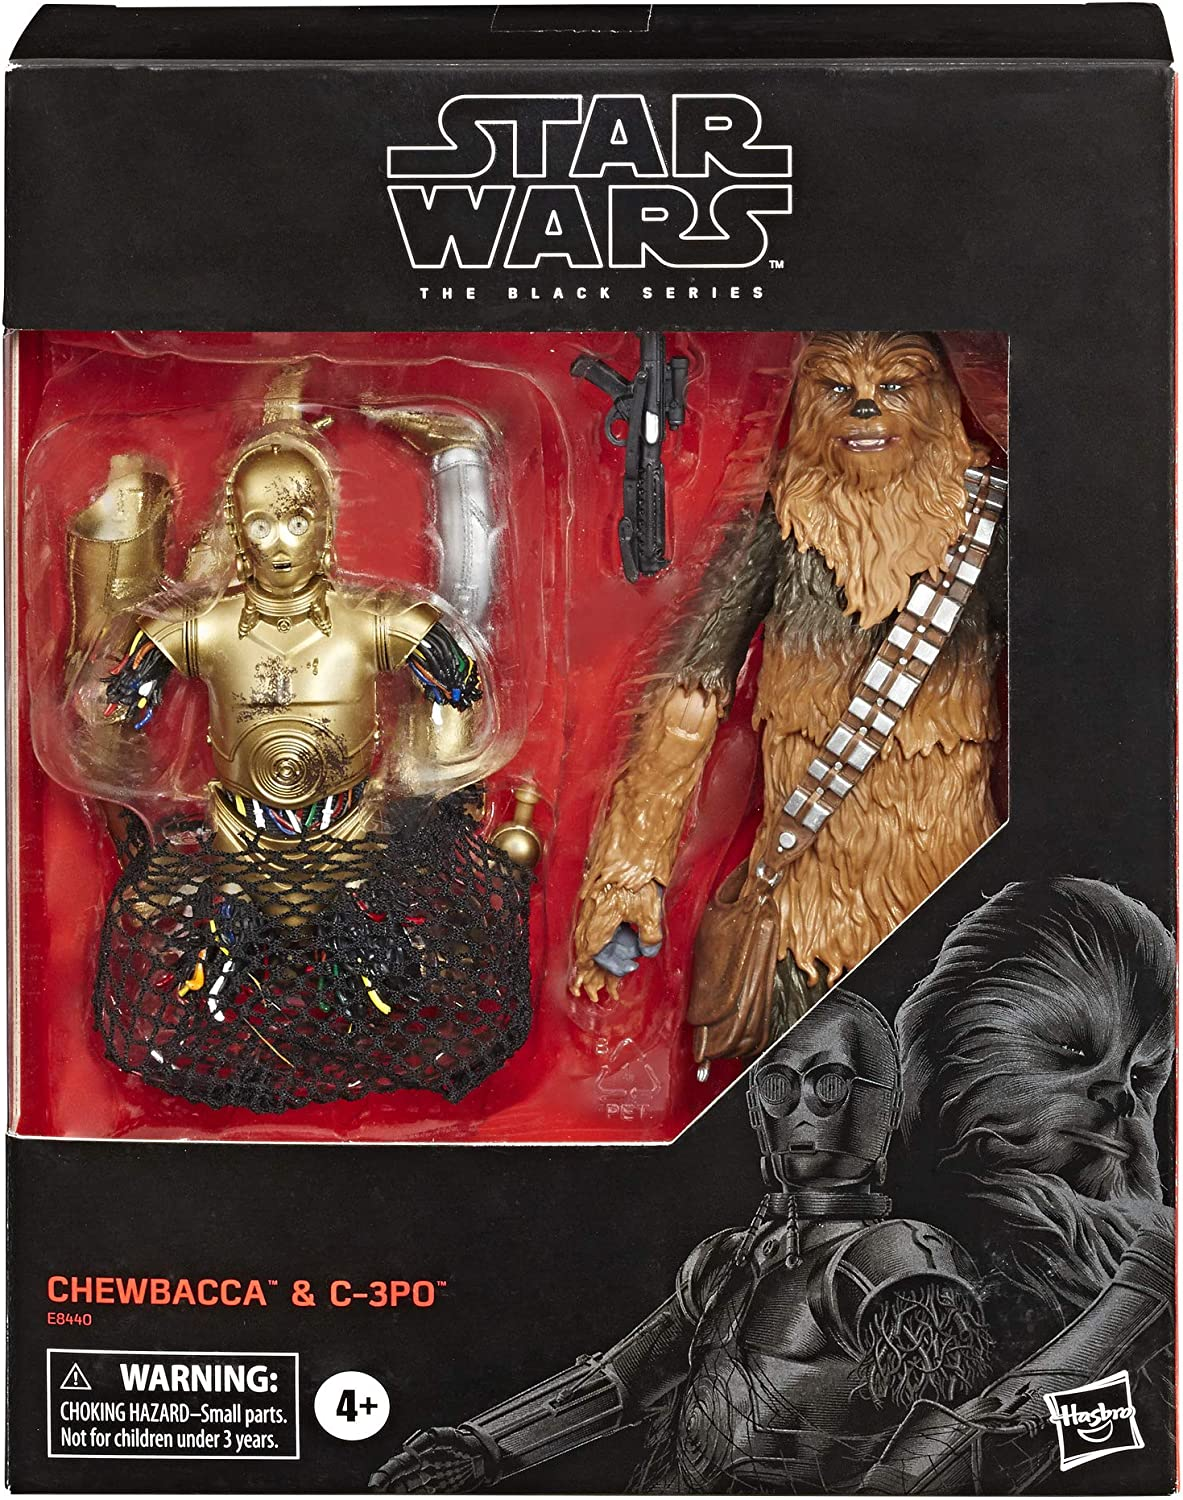 "Star Wars The Black Series Chewbacca & C-3PO Toys 6"" Scale The Empire Strikes Back Collectible Figures (Amazon Exclusive)"